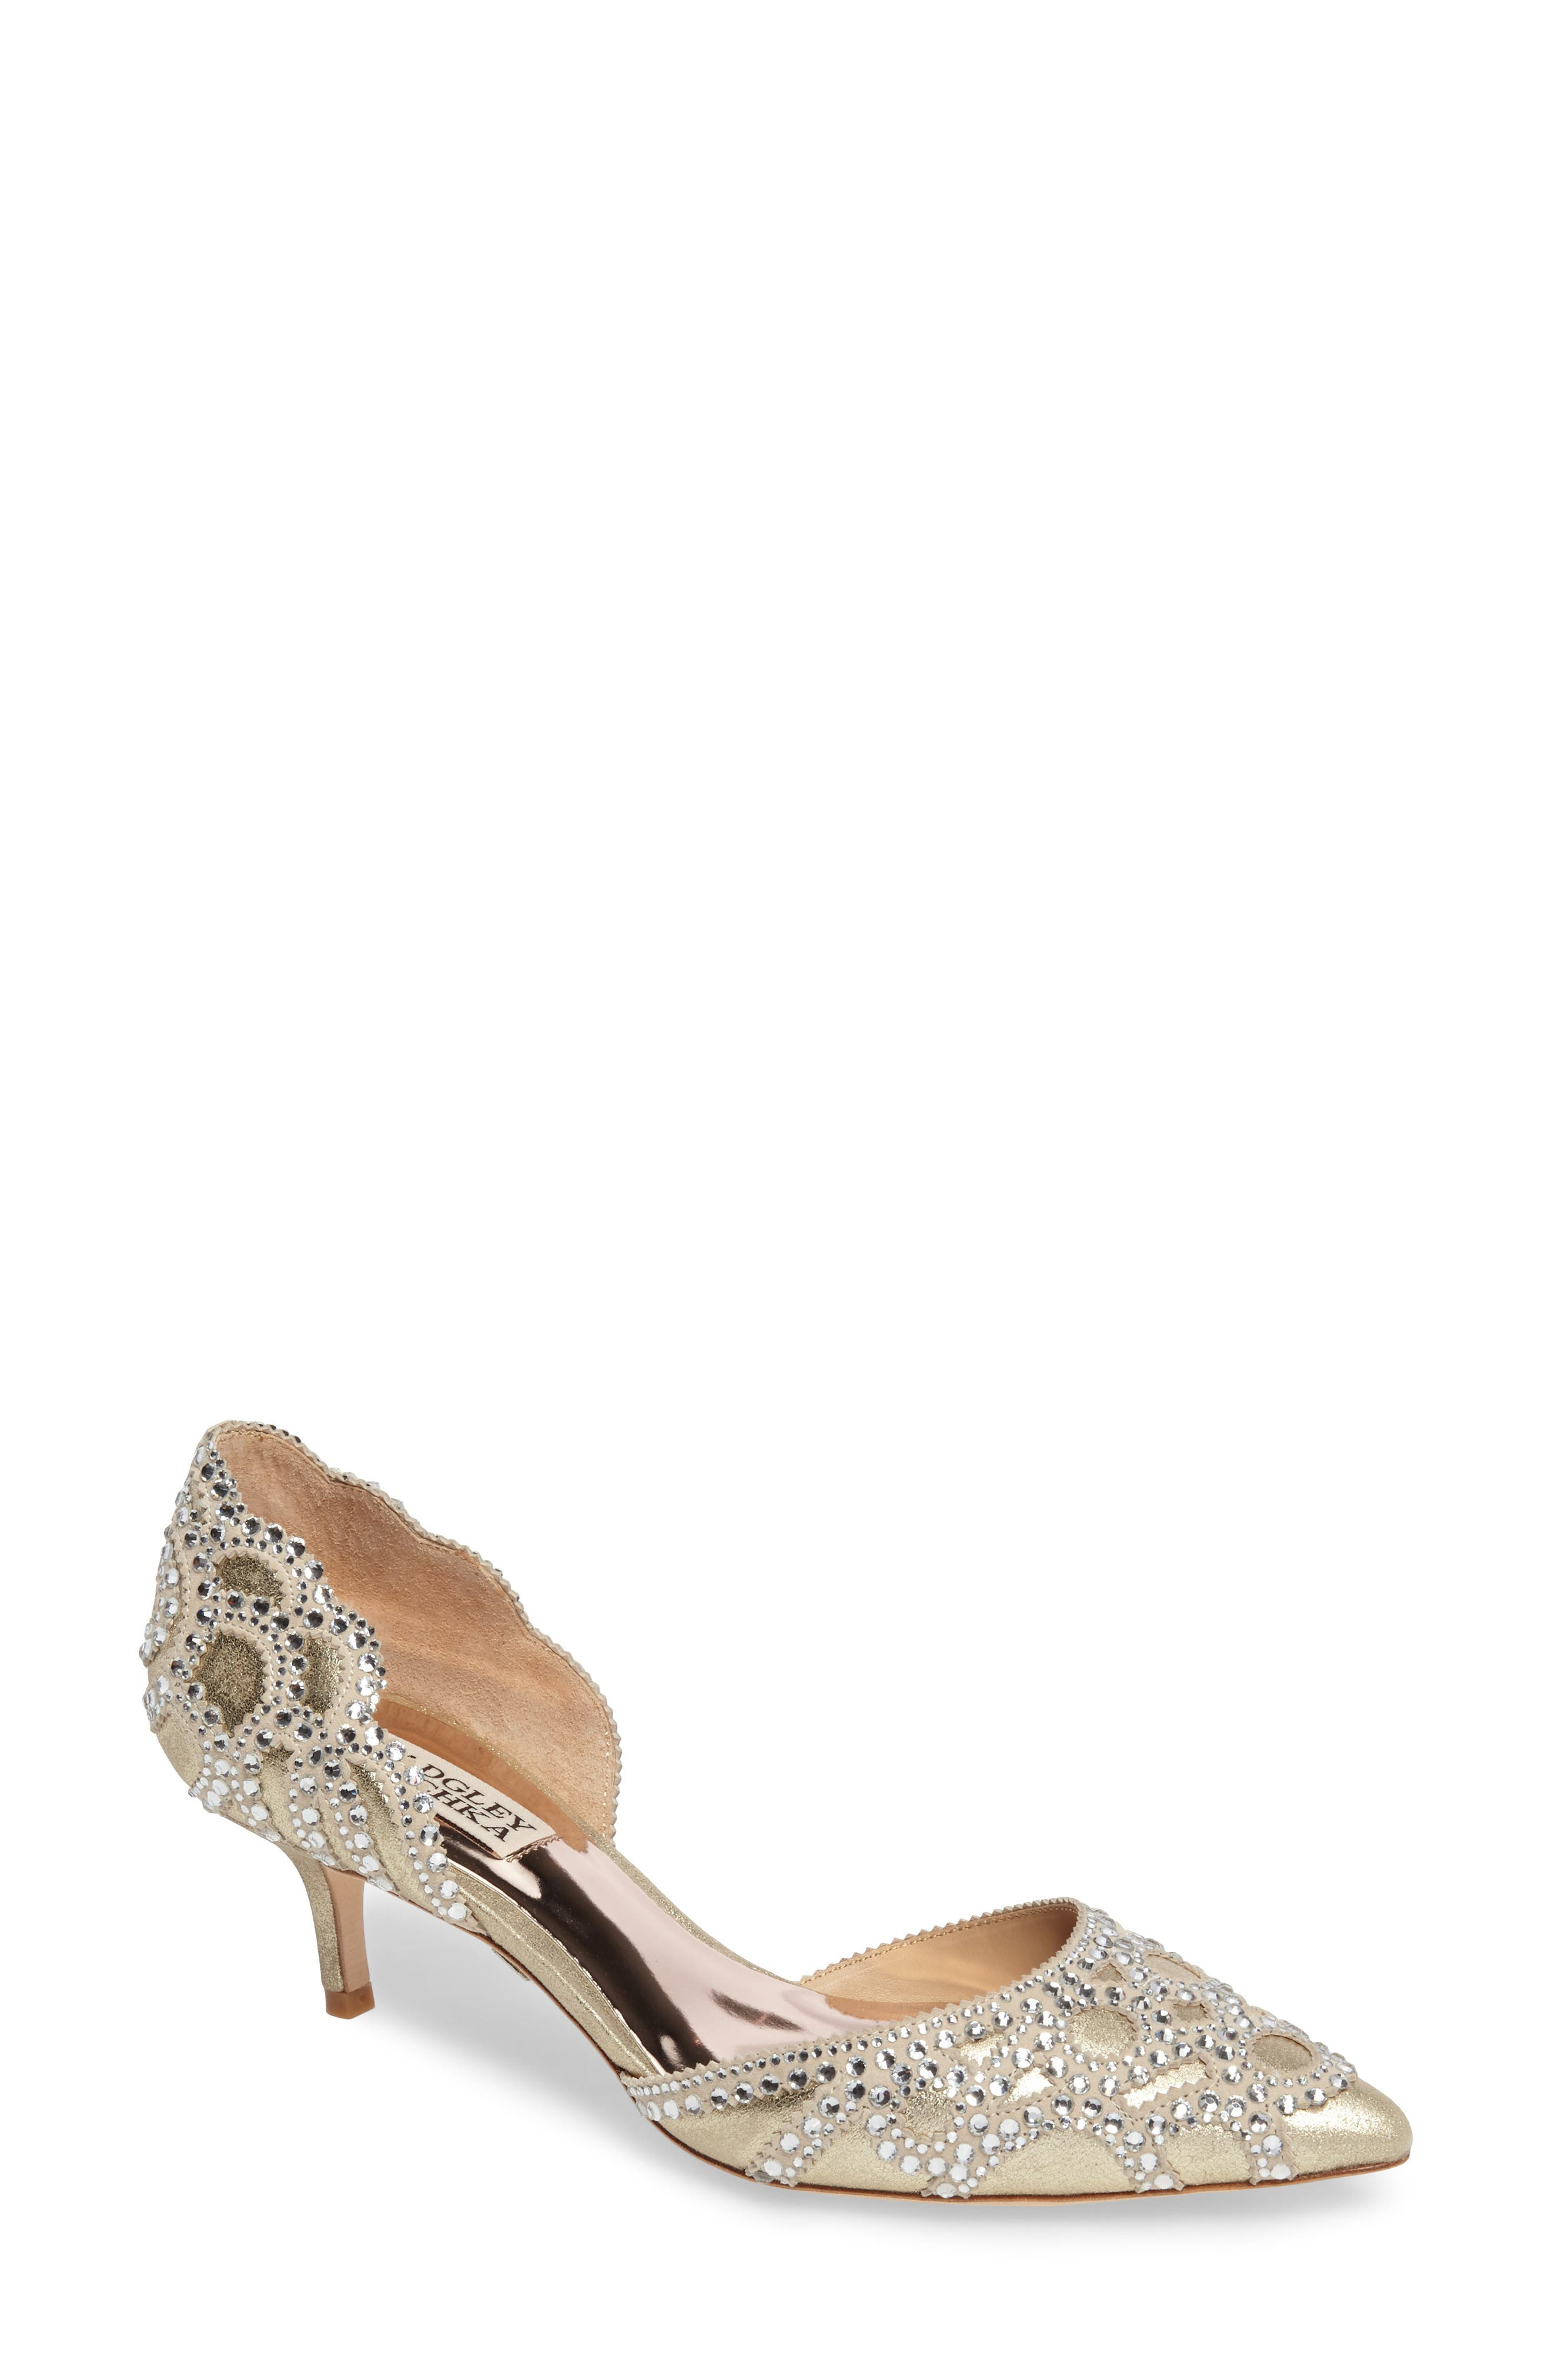 ,                             Badgley Mischka 'Ginny' Embellished d'Orsay Pump,                             Main thumbnail 1, color,                             PLATINO METALLIC SUEDE